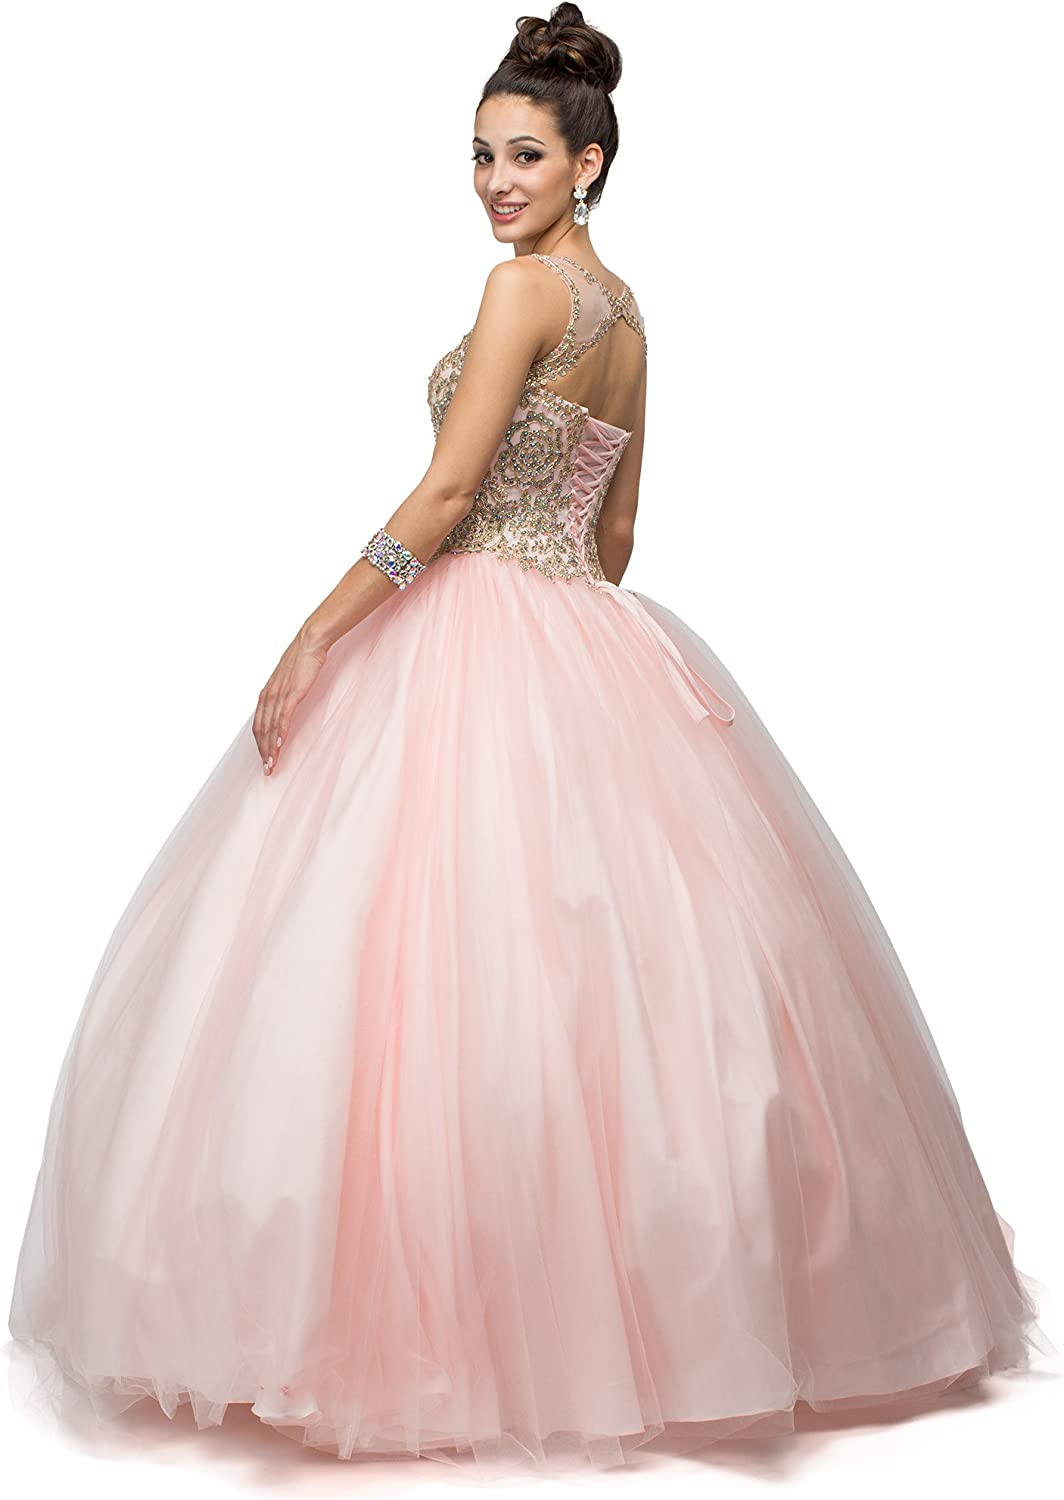 Amazon Com Dancing Queen Women S Gorgeous Blush Embroidered Quinceanera Dress Ladies Wedding Evening Party Pretty Ball Gown Princess Dresses Long Sleeveless Uk Clothing,Miami Wedding Dress